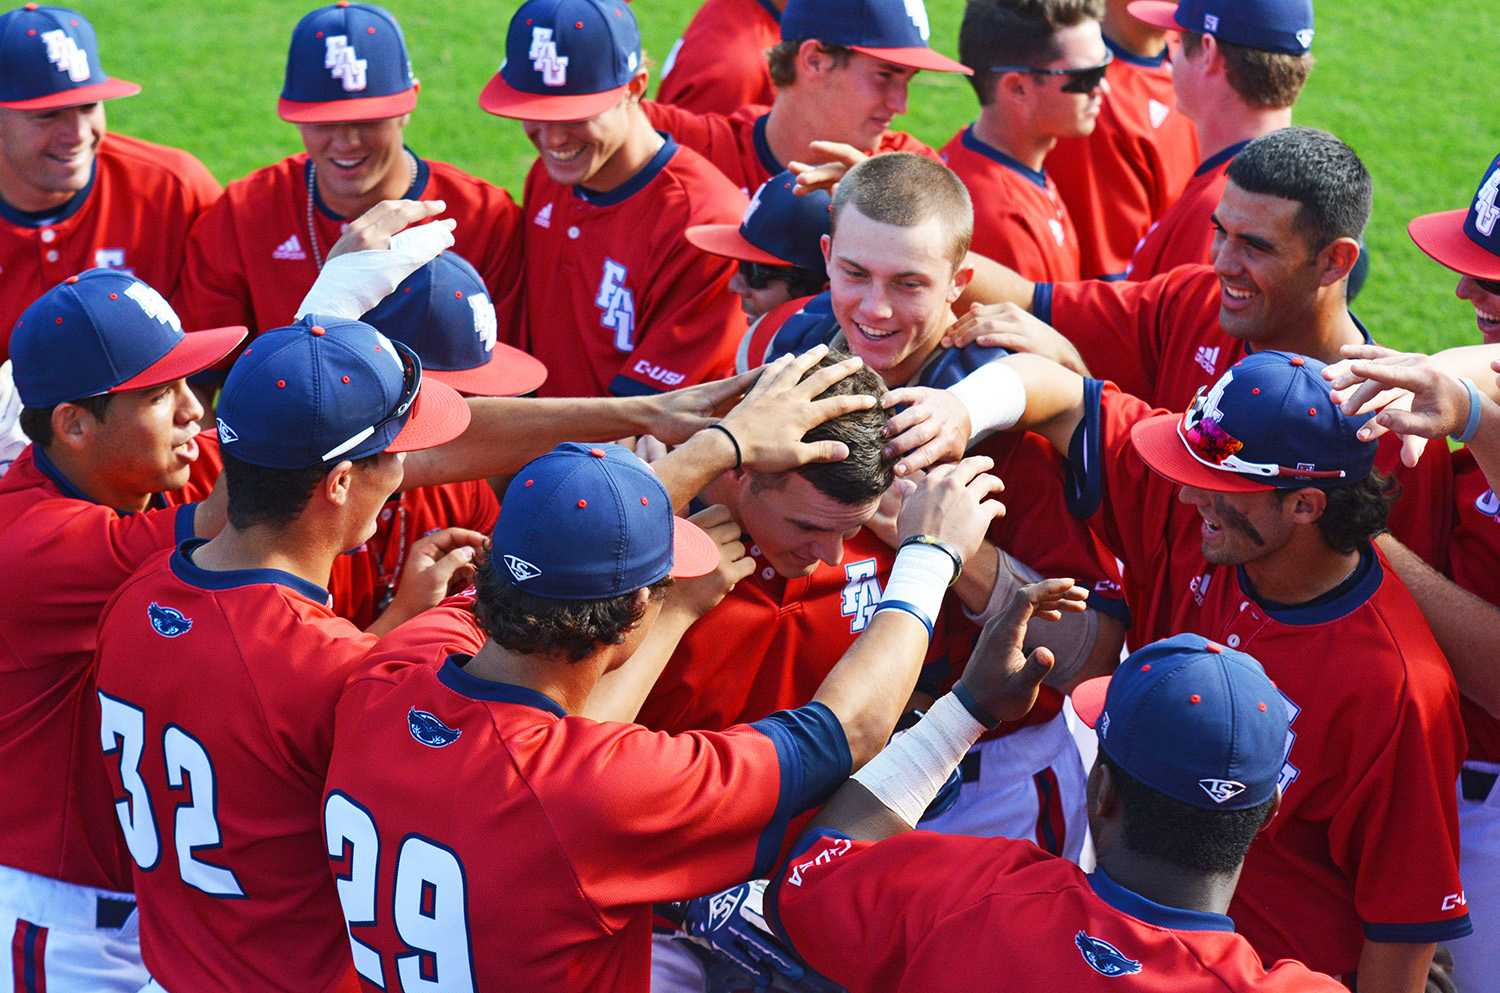 Outfielder Brandon Sanger (center) is swarmed by teammates after hitting a two-run home run in the bottom of the first inning for the last game of the series.